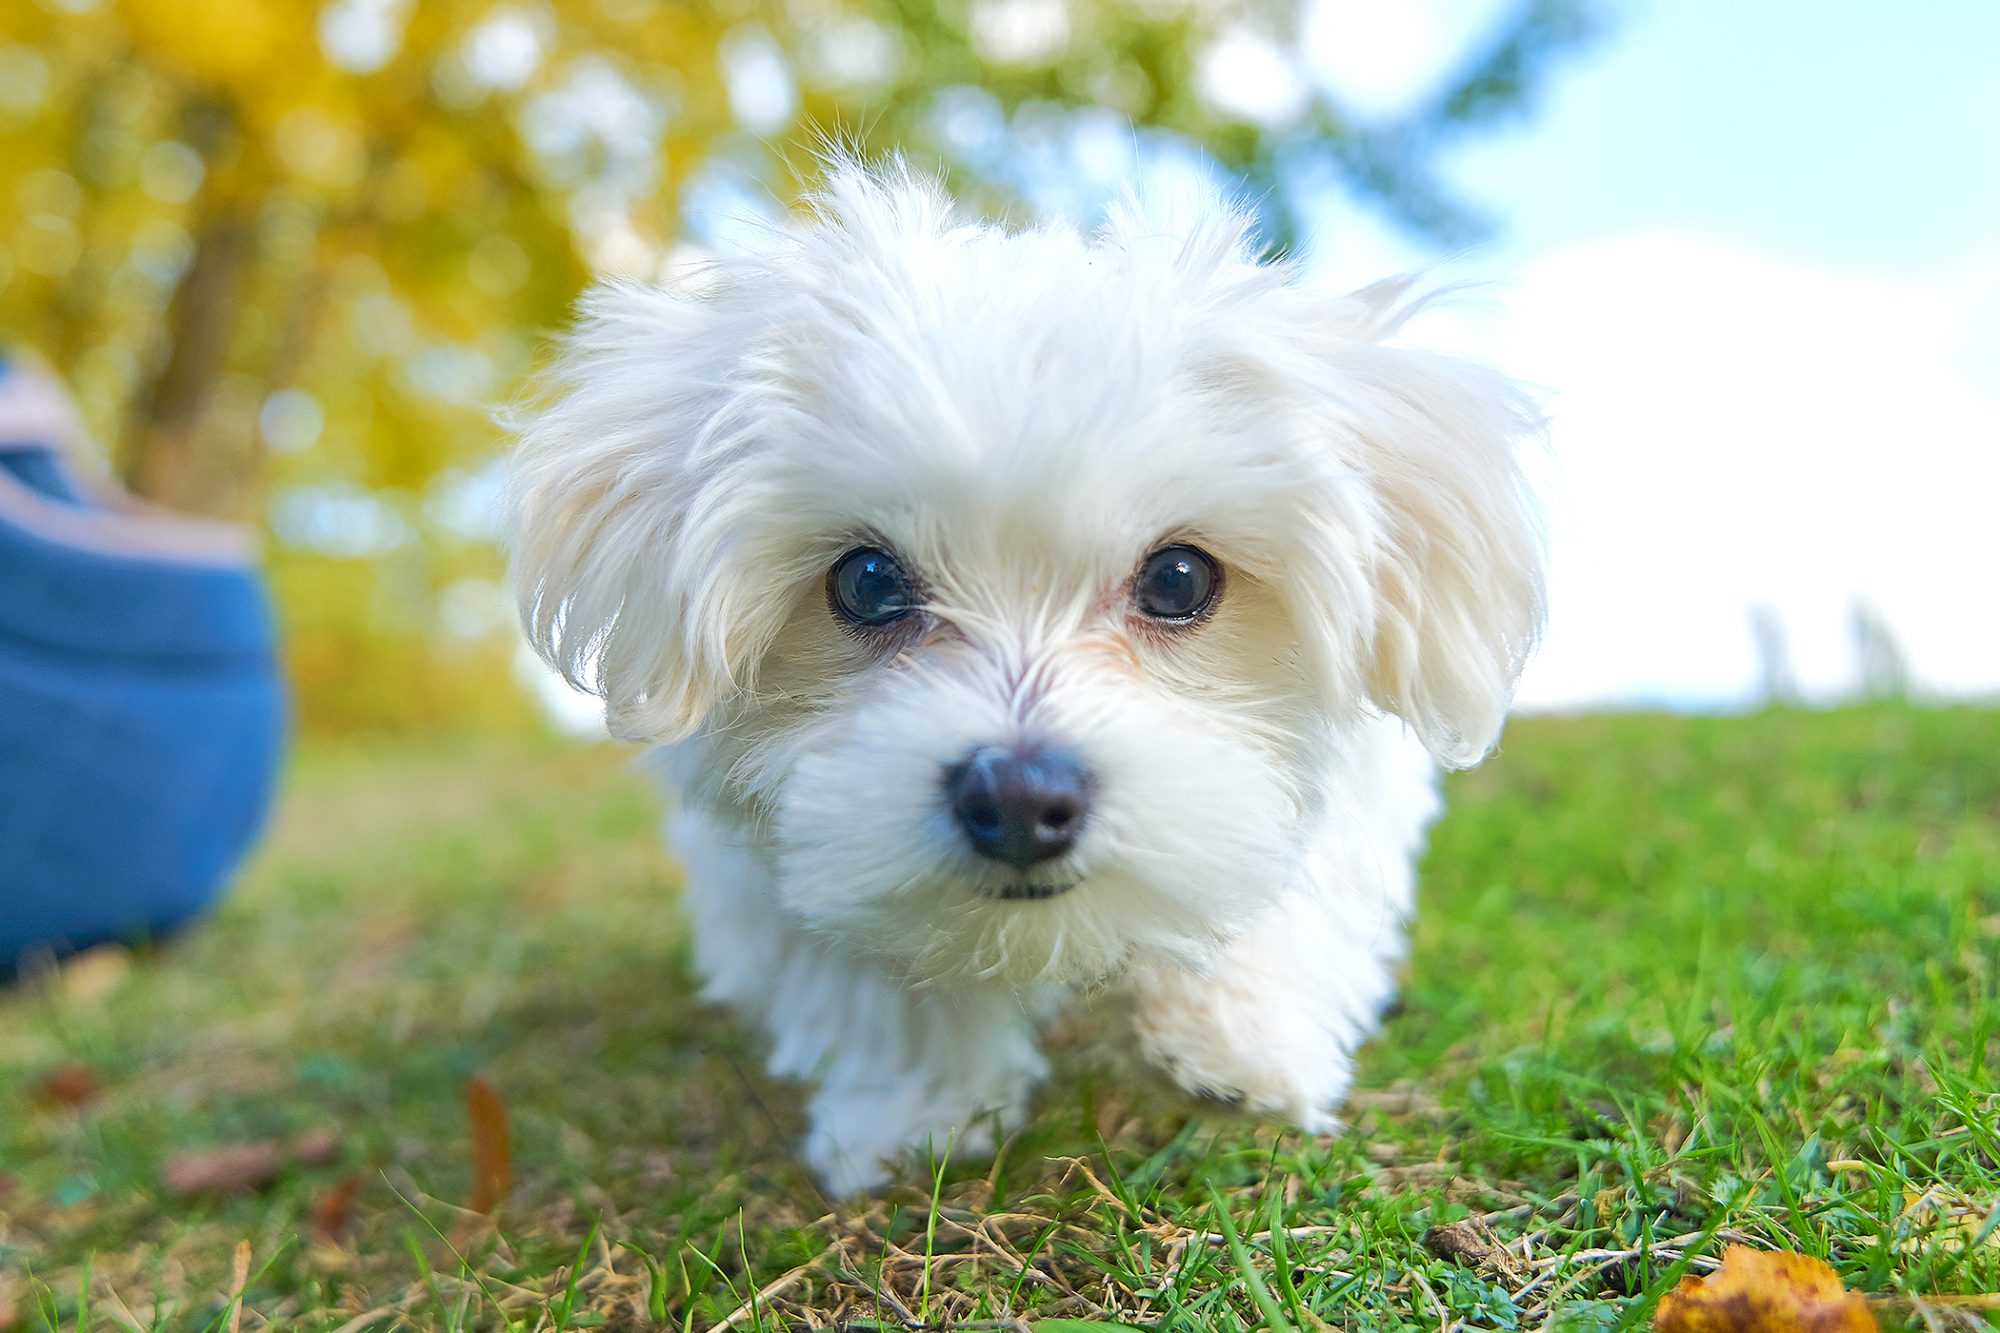 White maltese puppy approaches camera